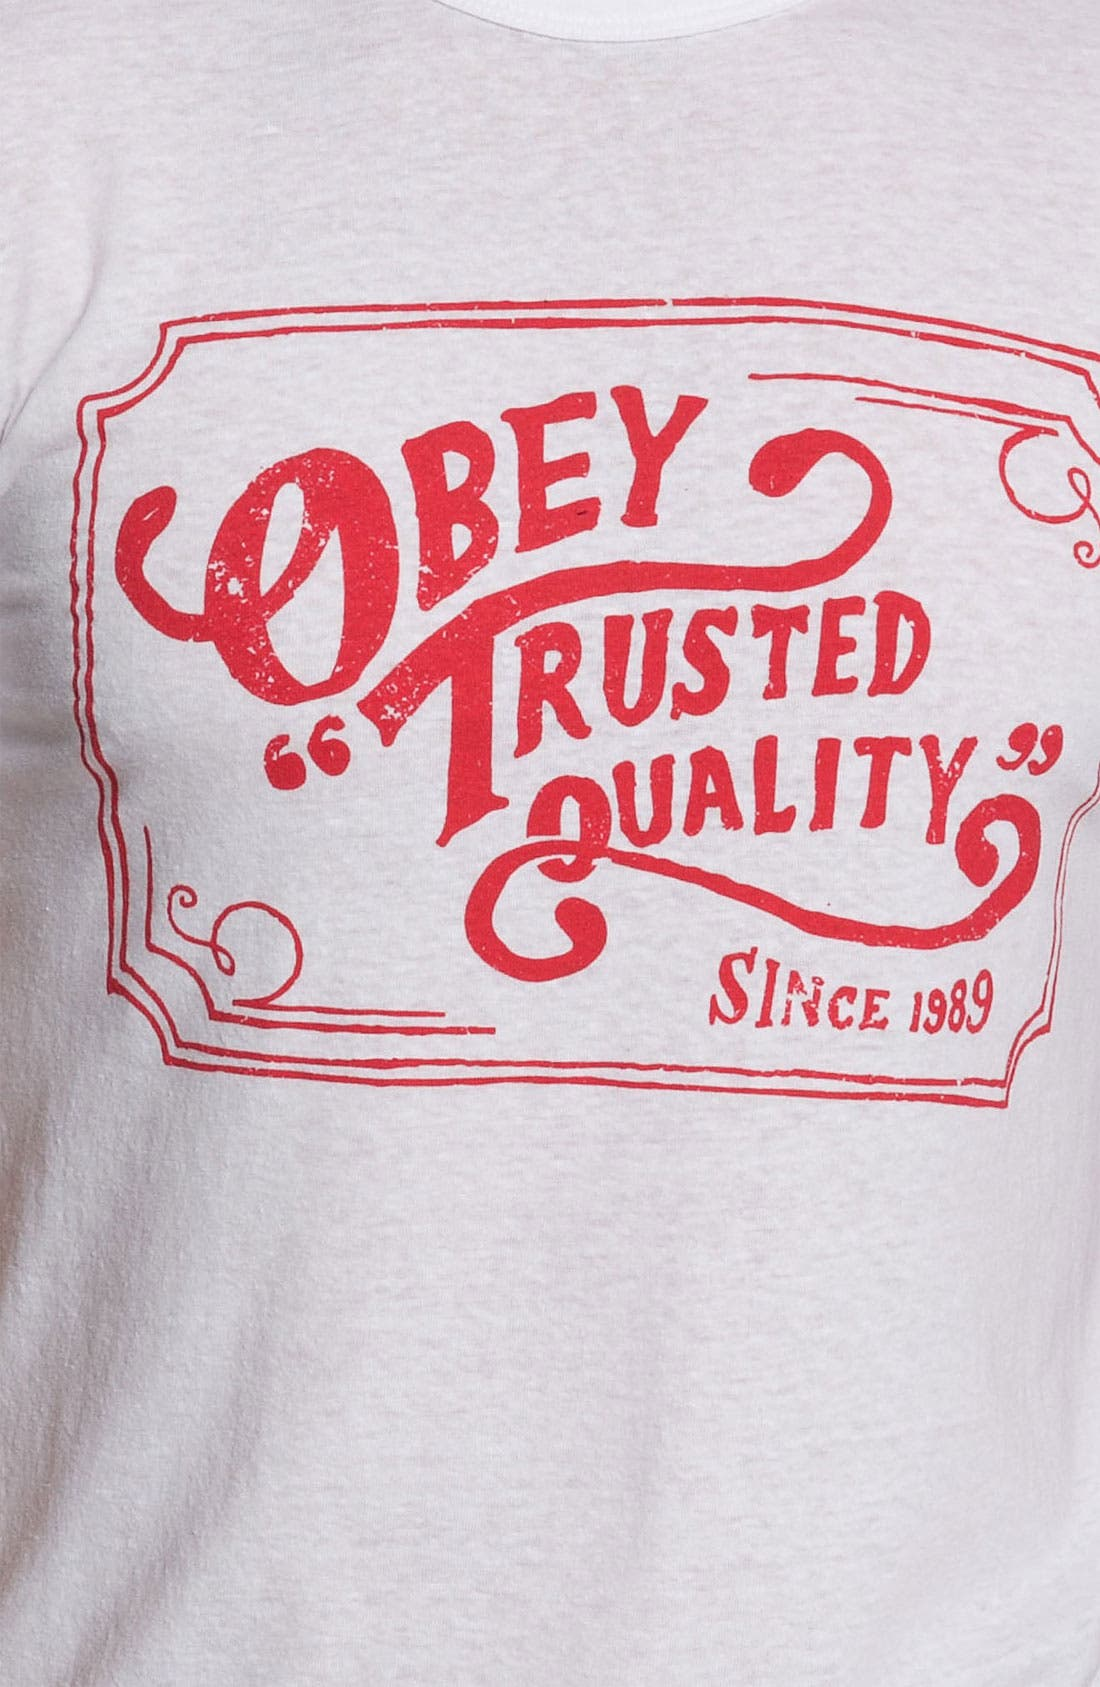 Alternate Image 3  - Obey 'Trusted Quality' T-Shirt